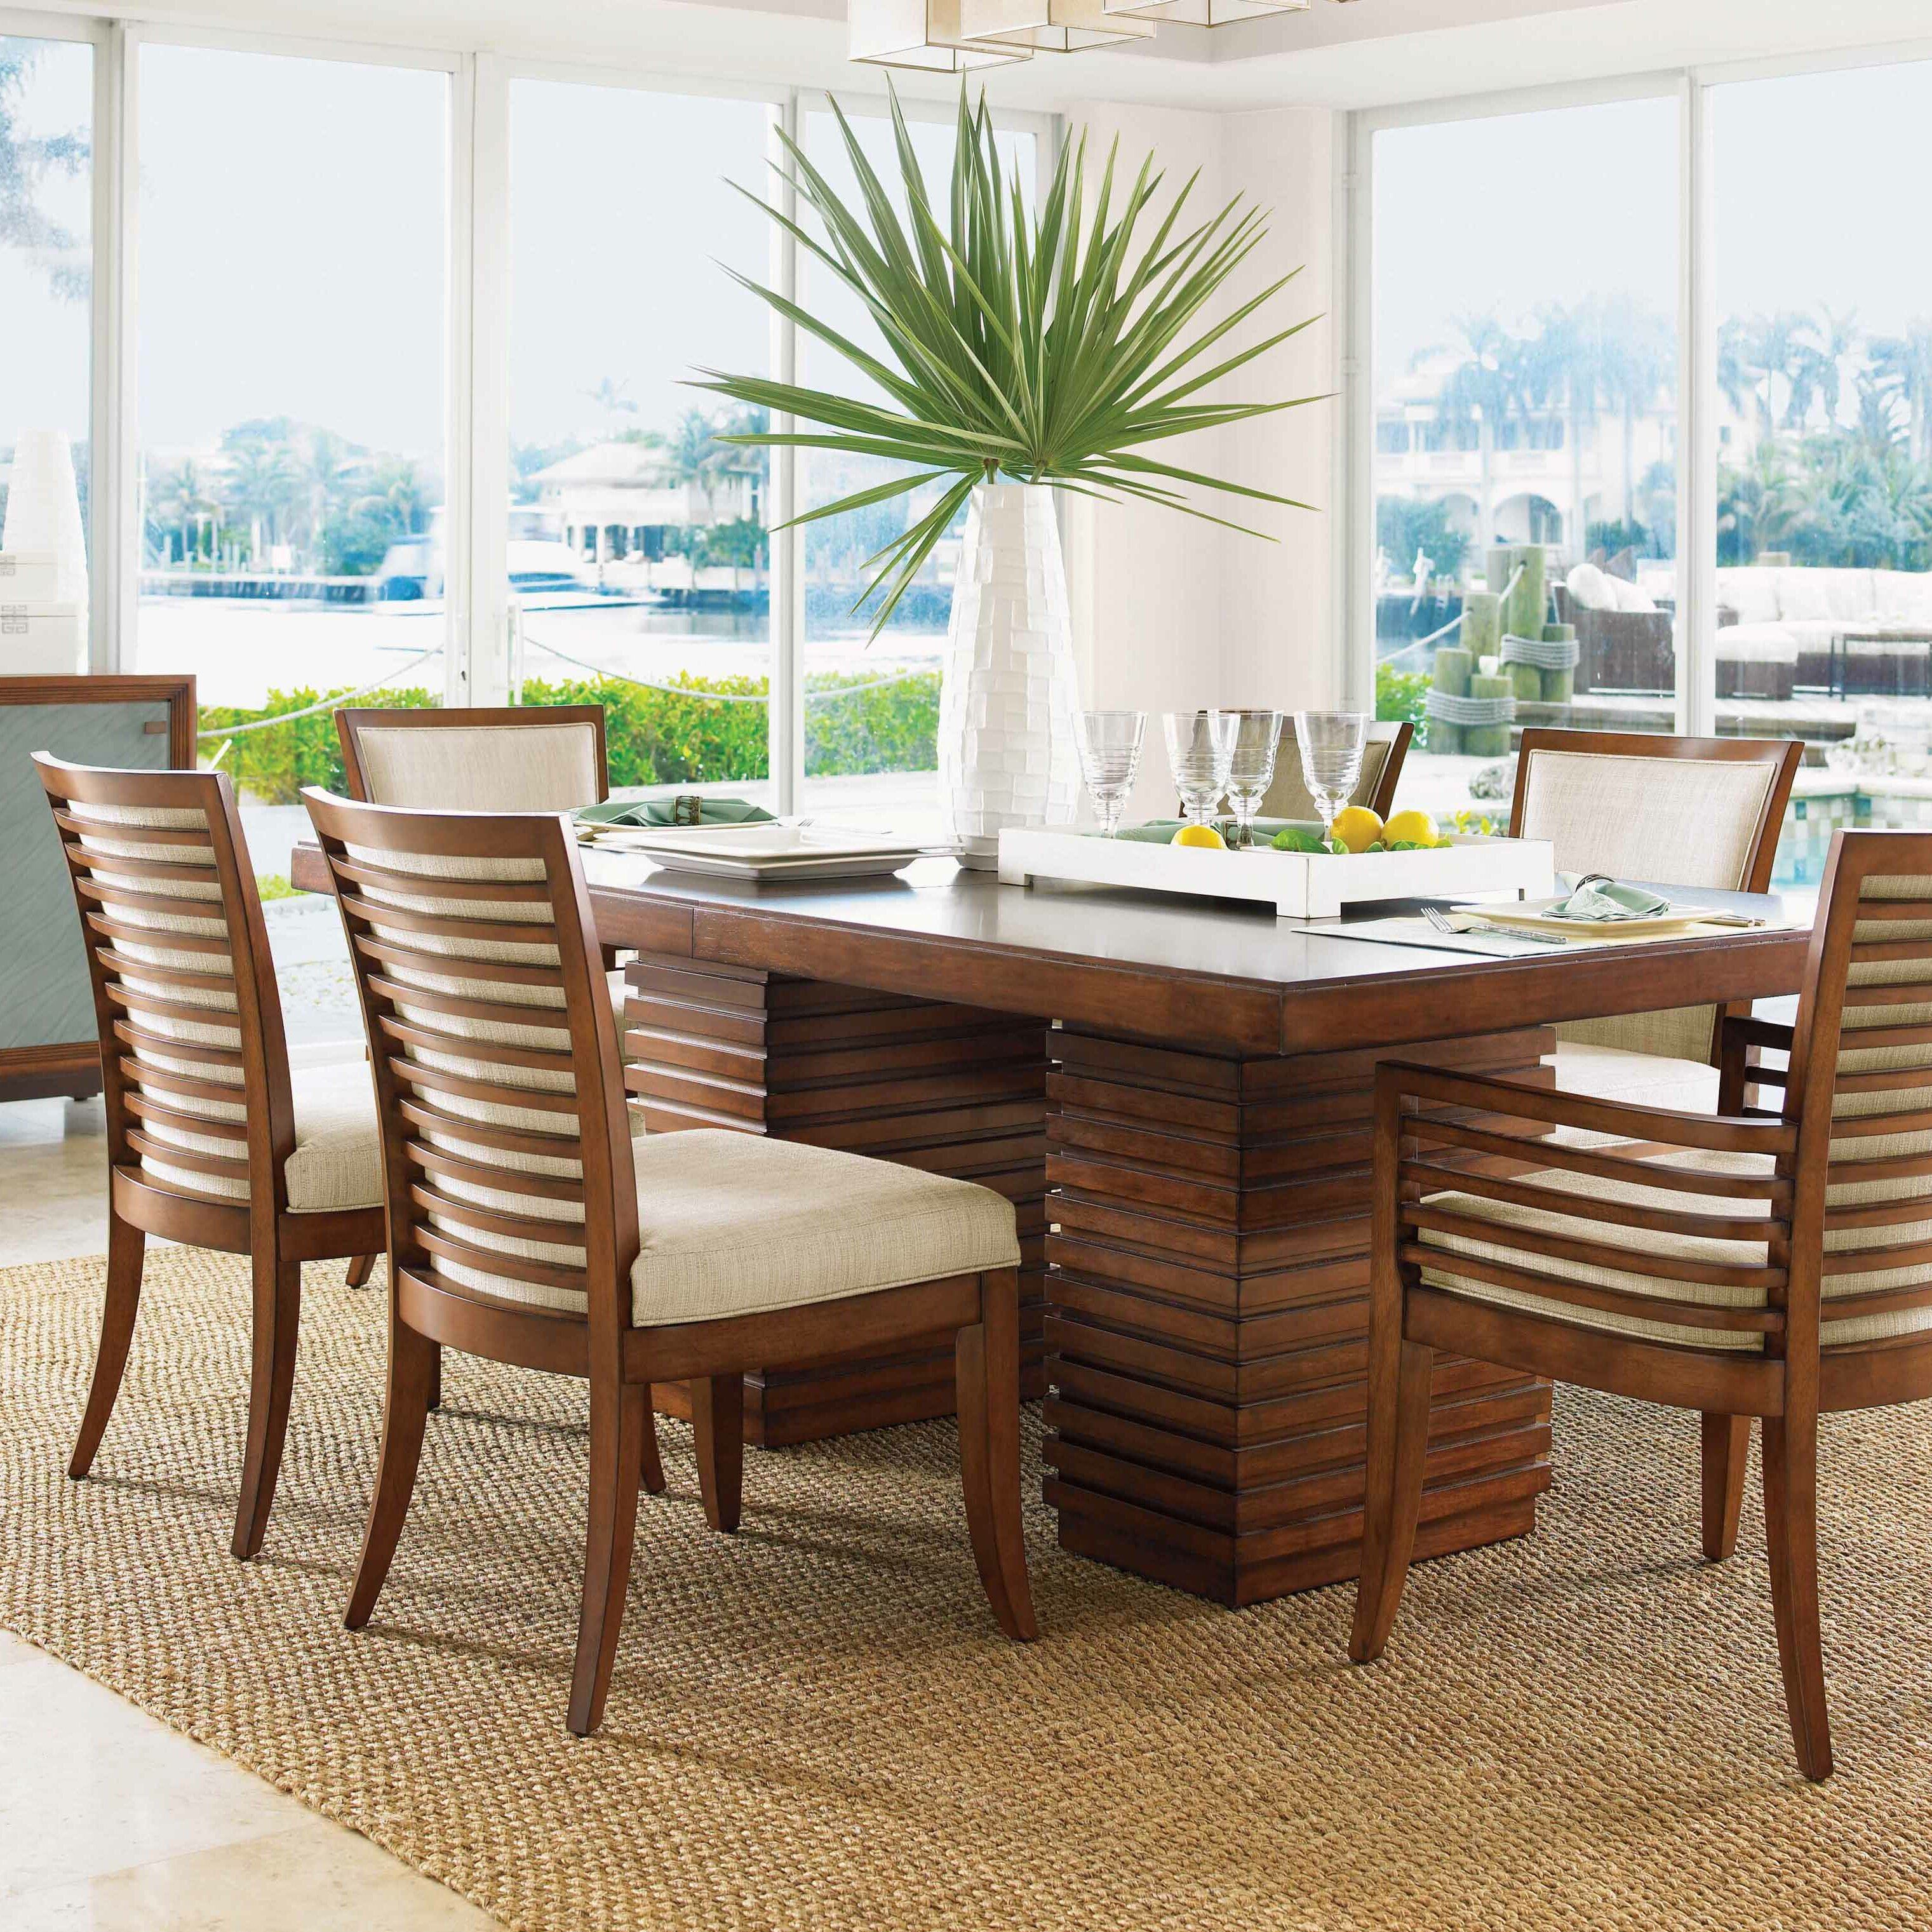 Tommy Bahama Dining Room Furniture: Tommy Bahama Home Ocean Club 7 Piece Dining Set & Reviews